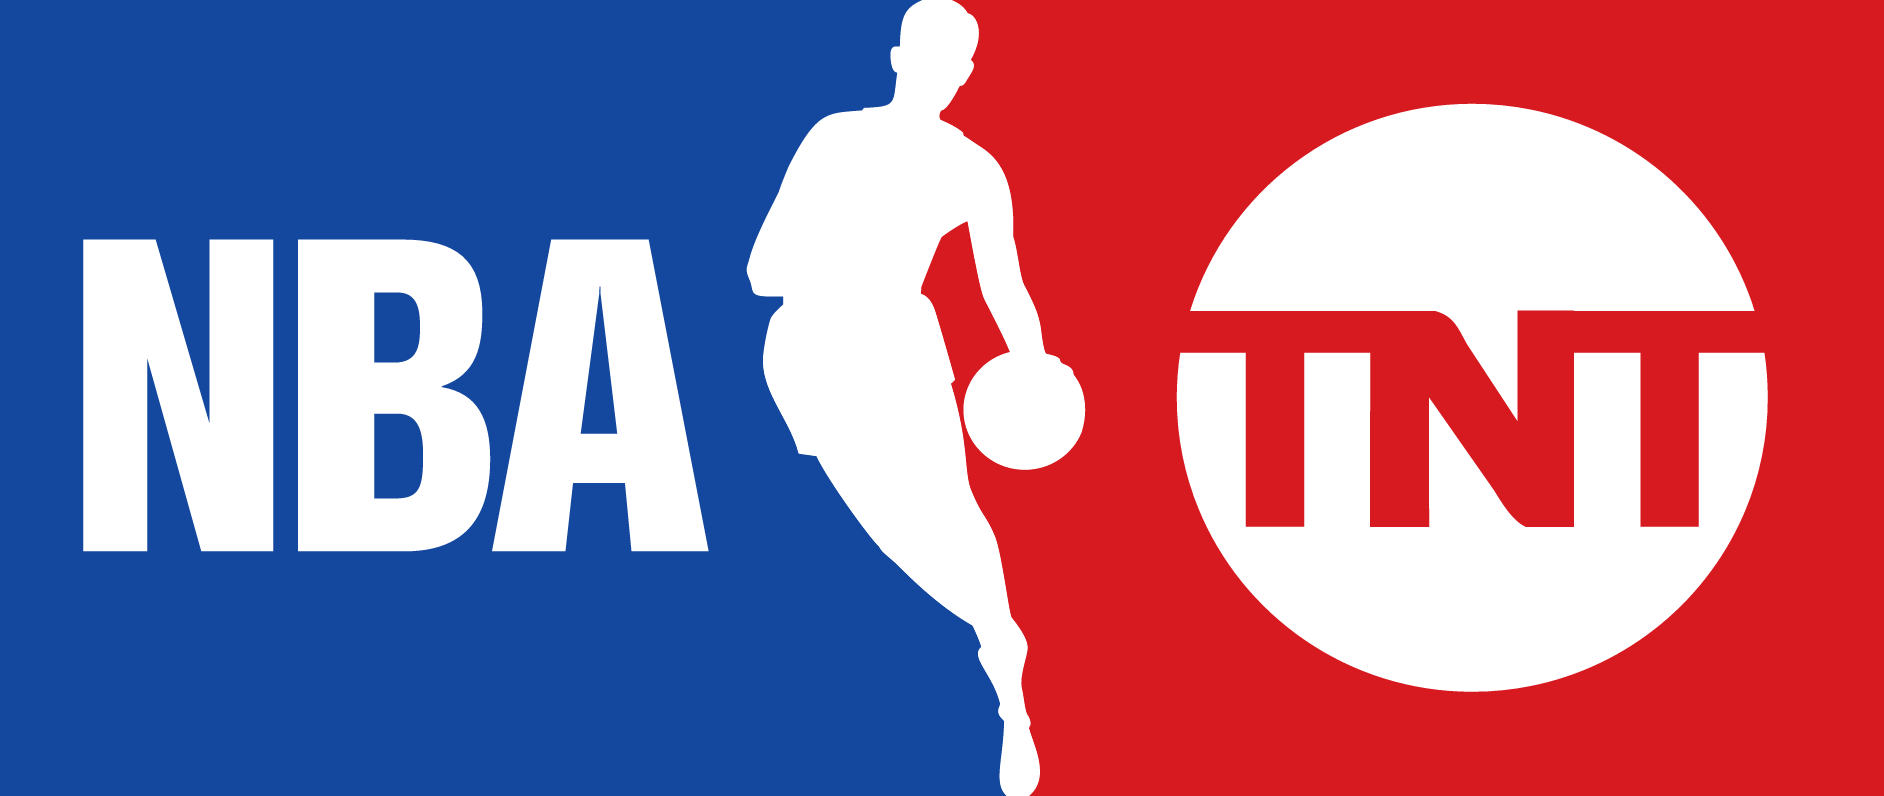 nba tip-off 2016: inside the nba hits the road as part of new 'nba